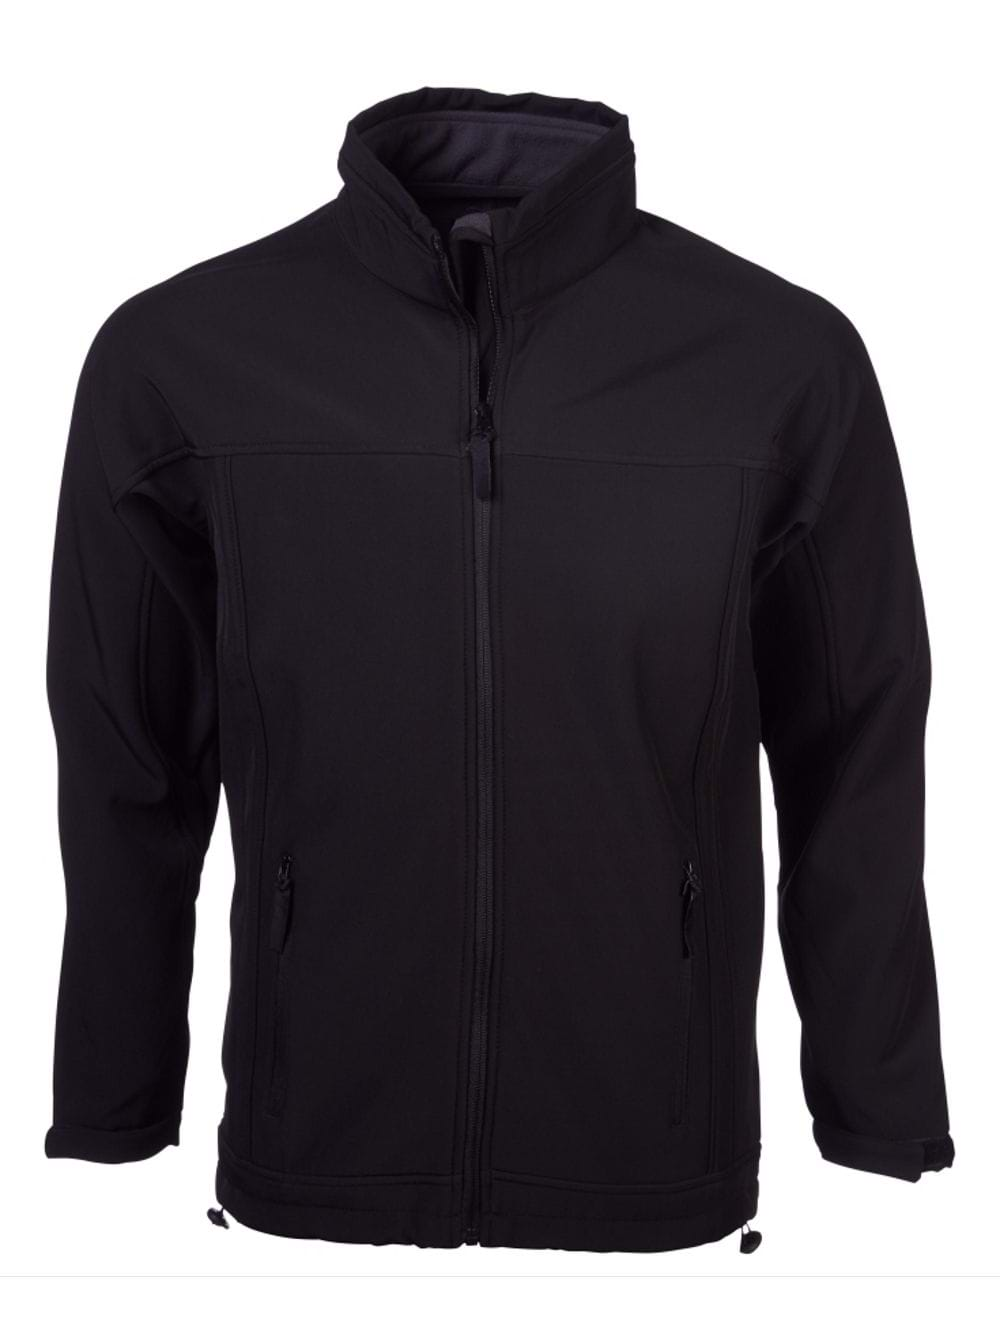 Unisex Summit Jacket - Black/Charcoal